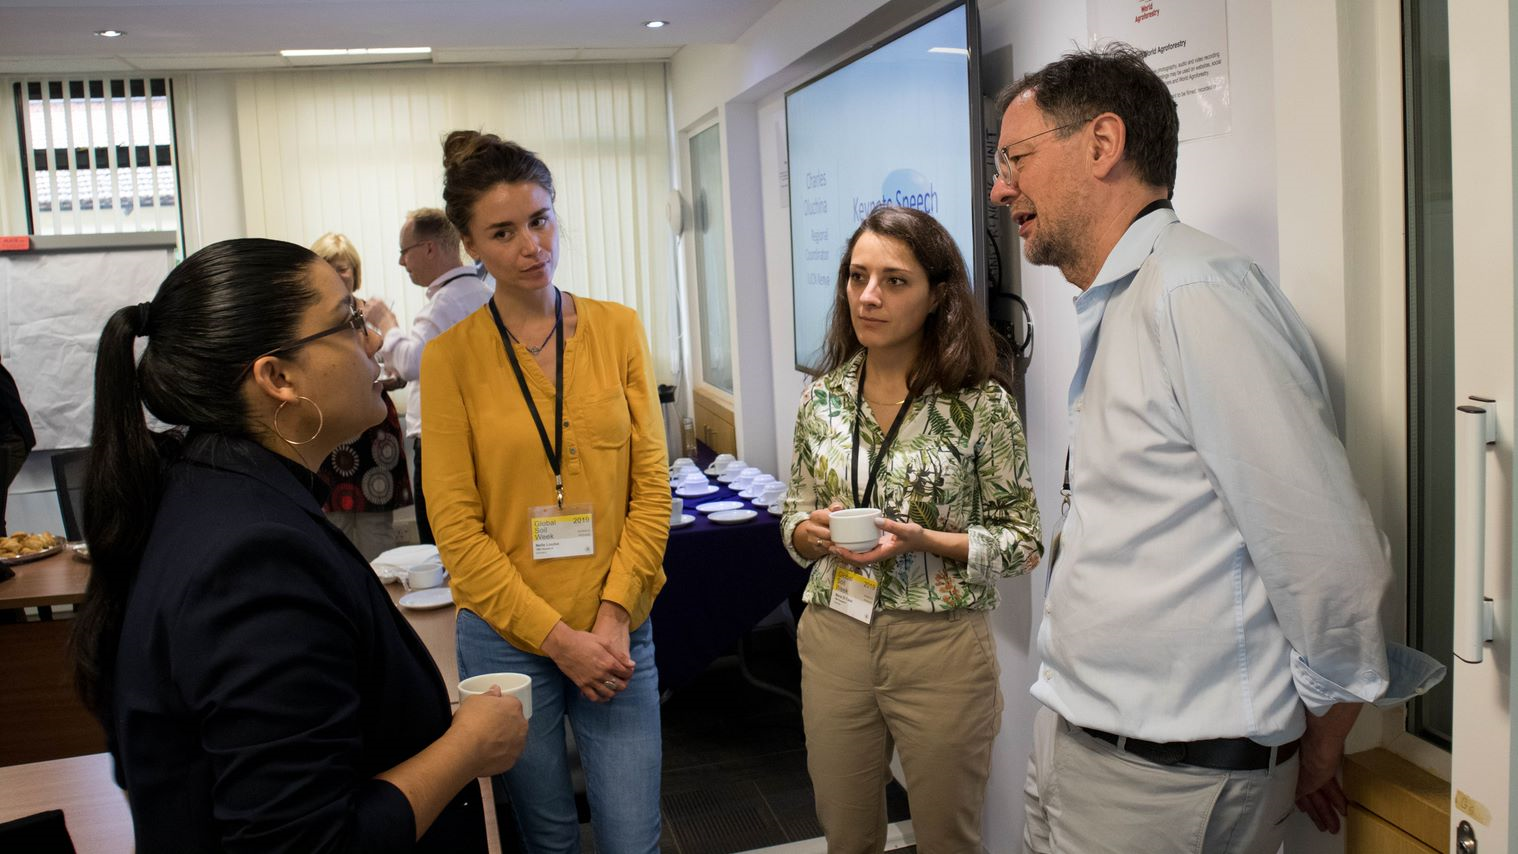 Continuing the discussions during a coffee break (Left to right: Helena Dávila Esquivel (ADIMI), Louisa Nelle (TMG Research), Marai El Fassi (TMG Research); Alexander Müller (Managing Director of TMG Research); Photo: Bruno St-Jacques / TMG Research)